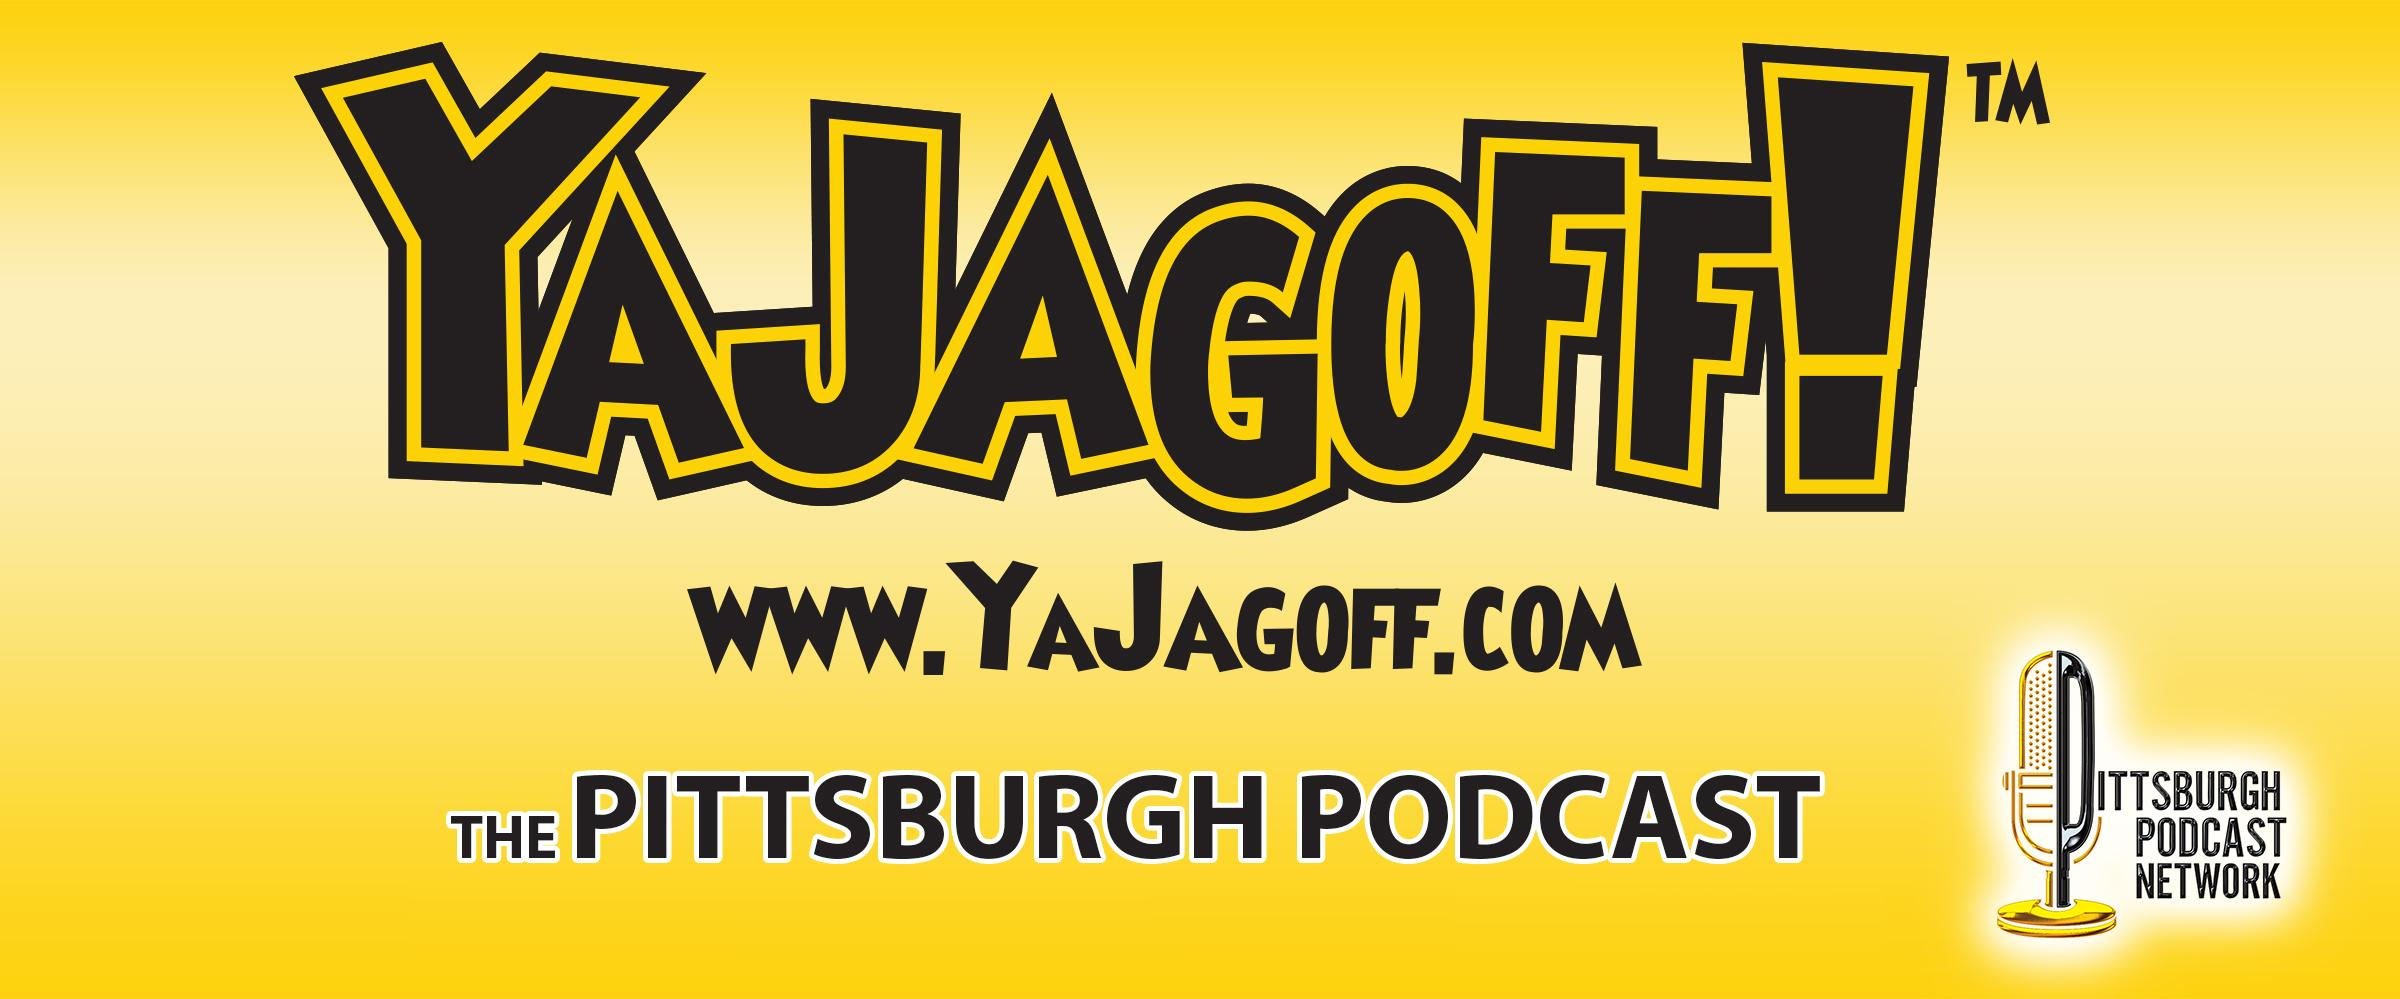 YaJagoff Pittsburgh Podcast